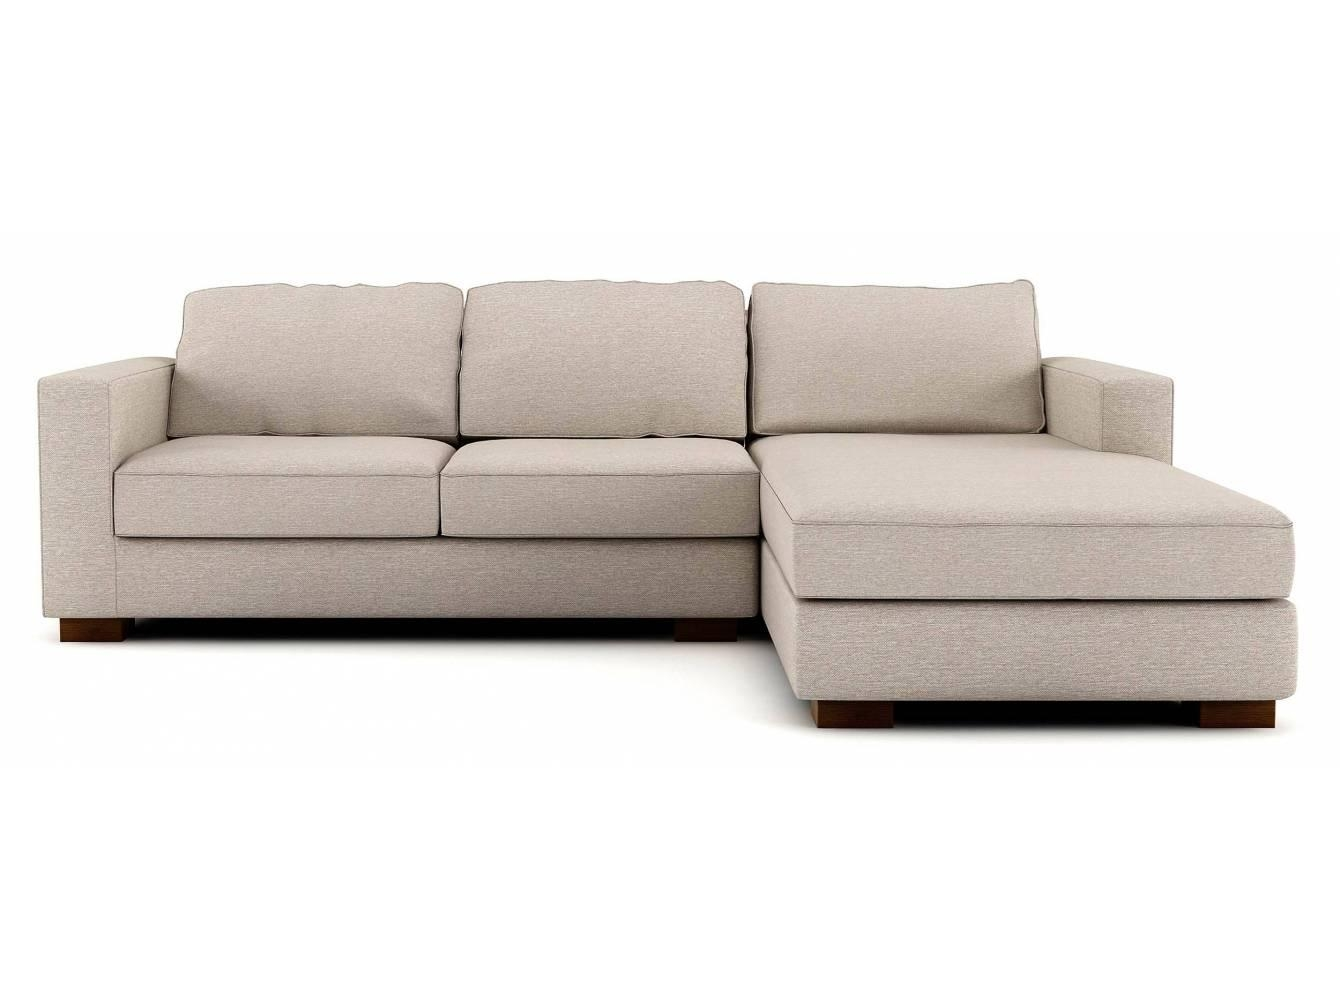 Rio Chaise Sectional – Stem Inside Eco Friendly Sectional Sofa (View 2 of 15)